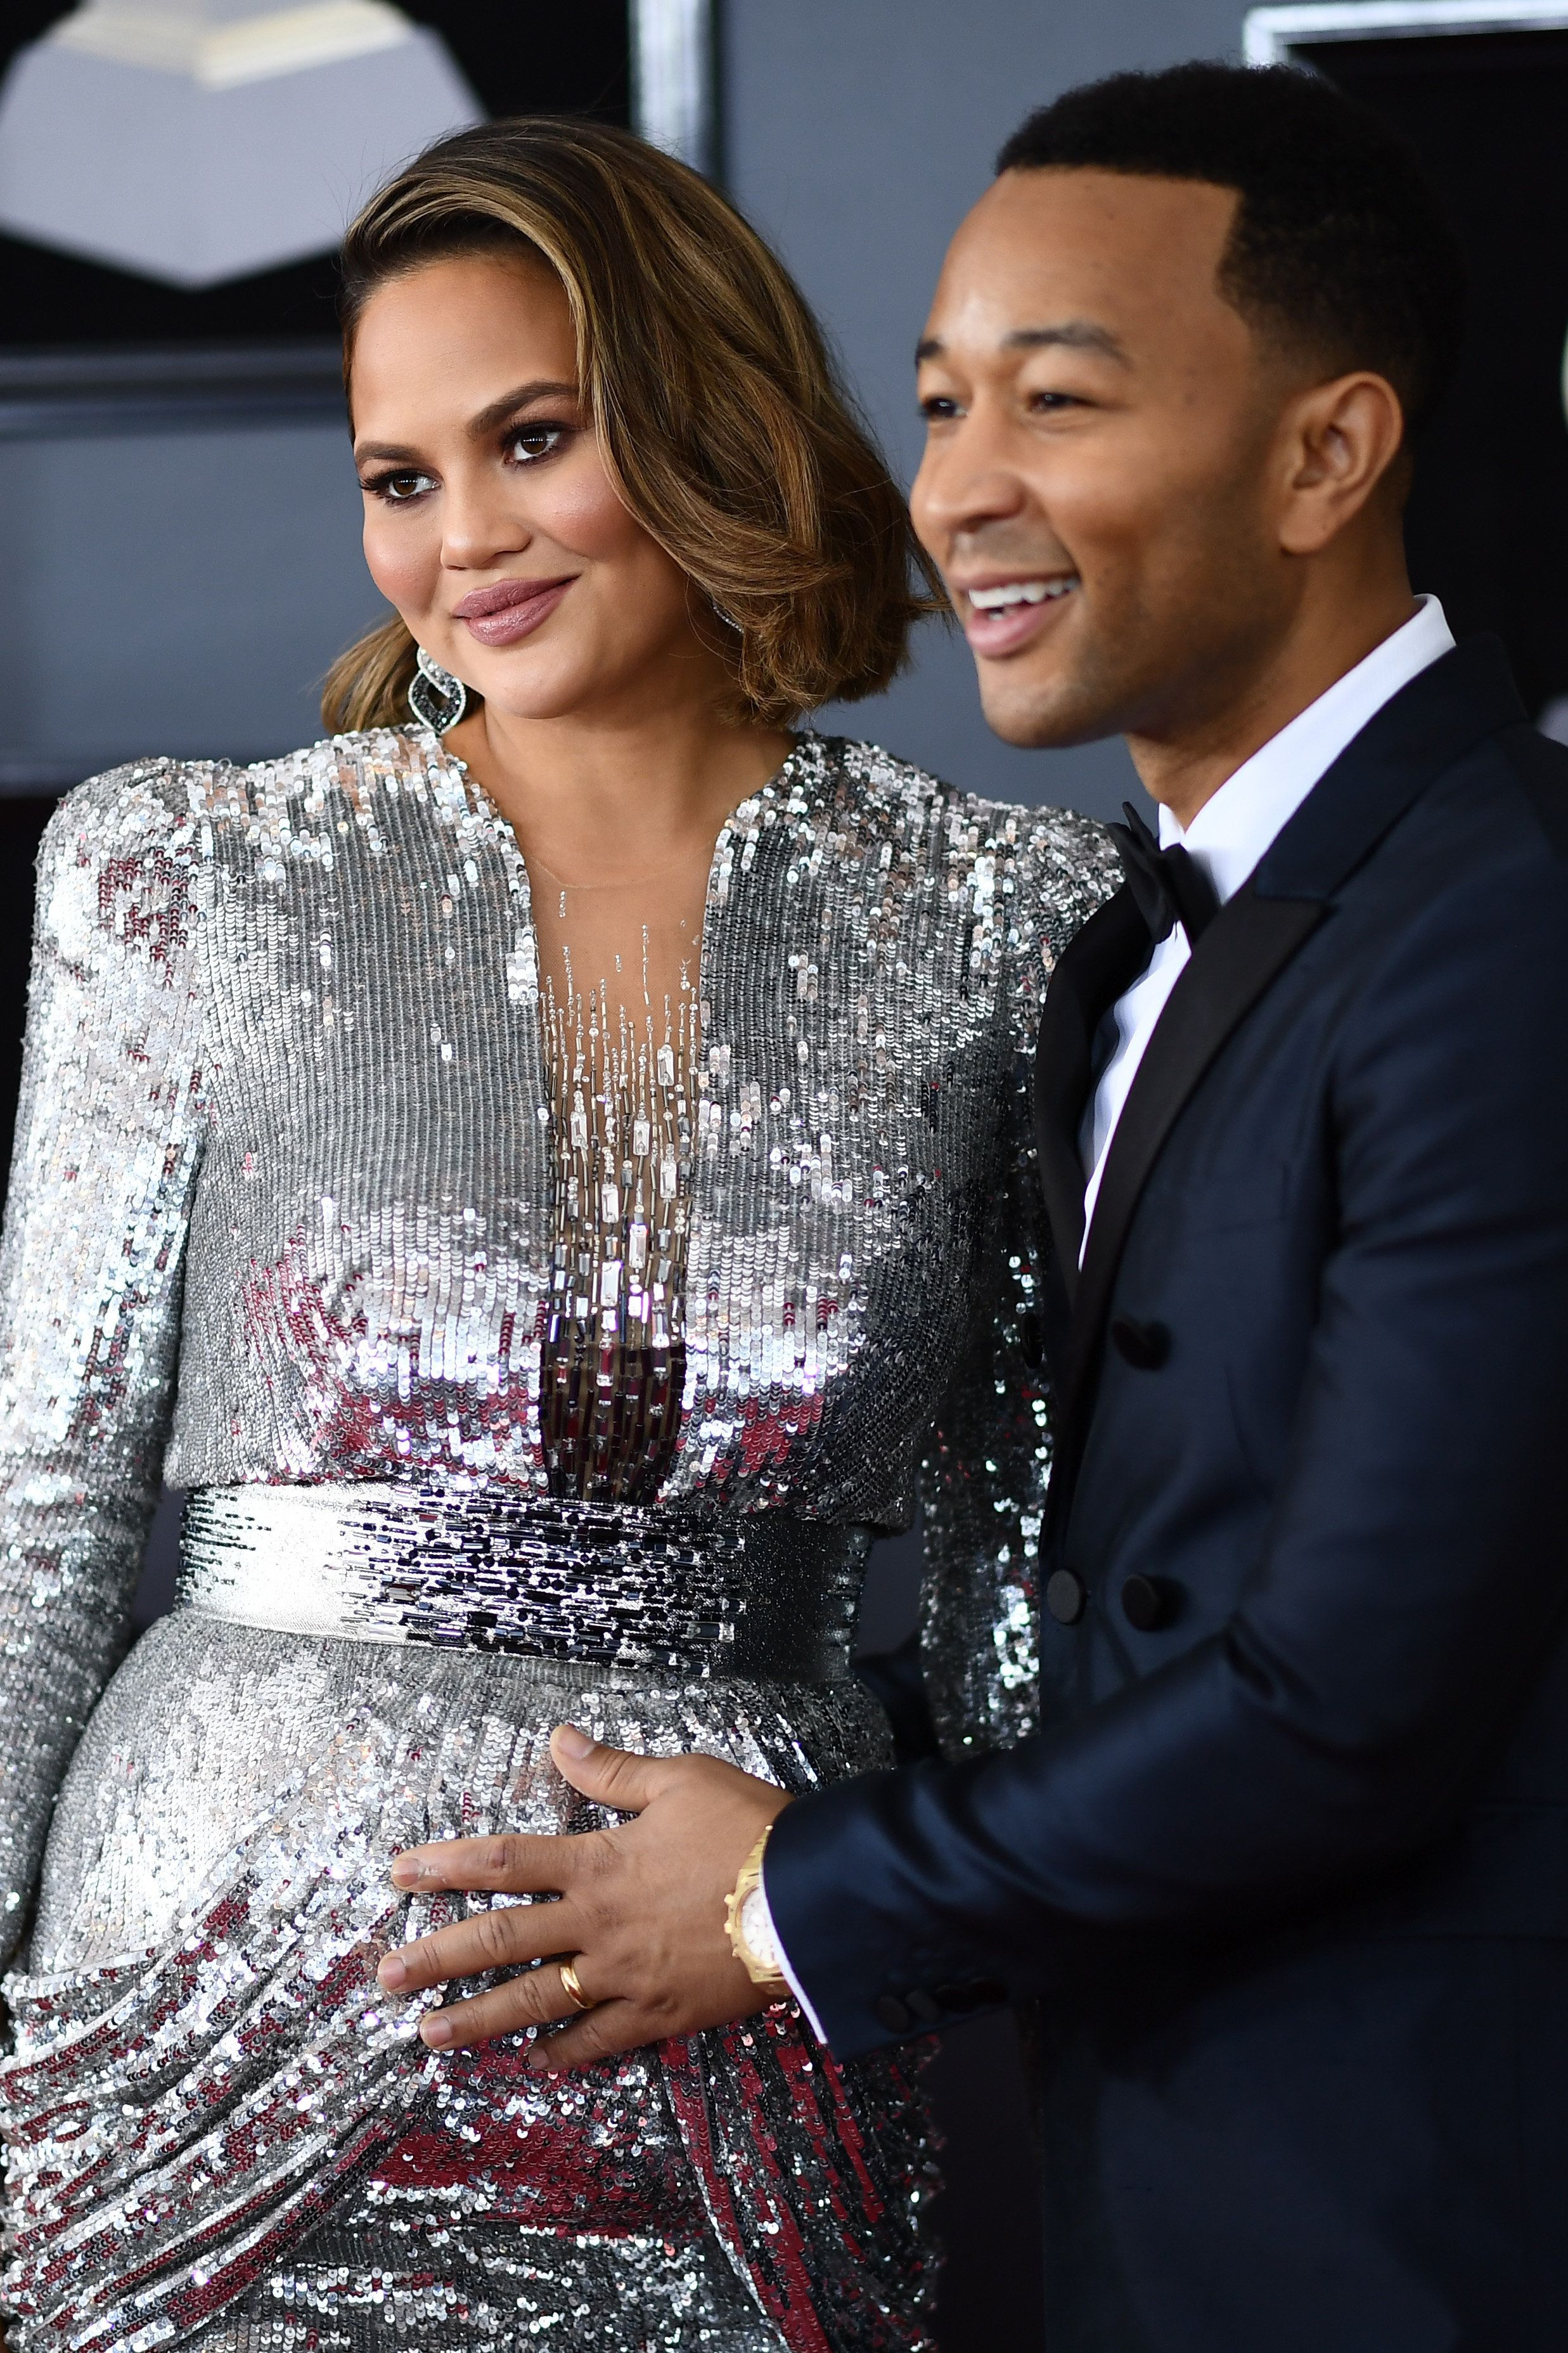 John Legend (R) and Chrissy Teigen arrive for the 60th Grammy Awards on January 28, 2018, in New York.  / AFP PHOTO / Jewel SAMAD        (Photo credit should read JEWEL SAMAD/AFP/Getty Images)